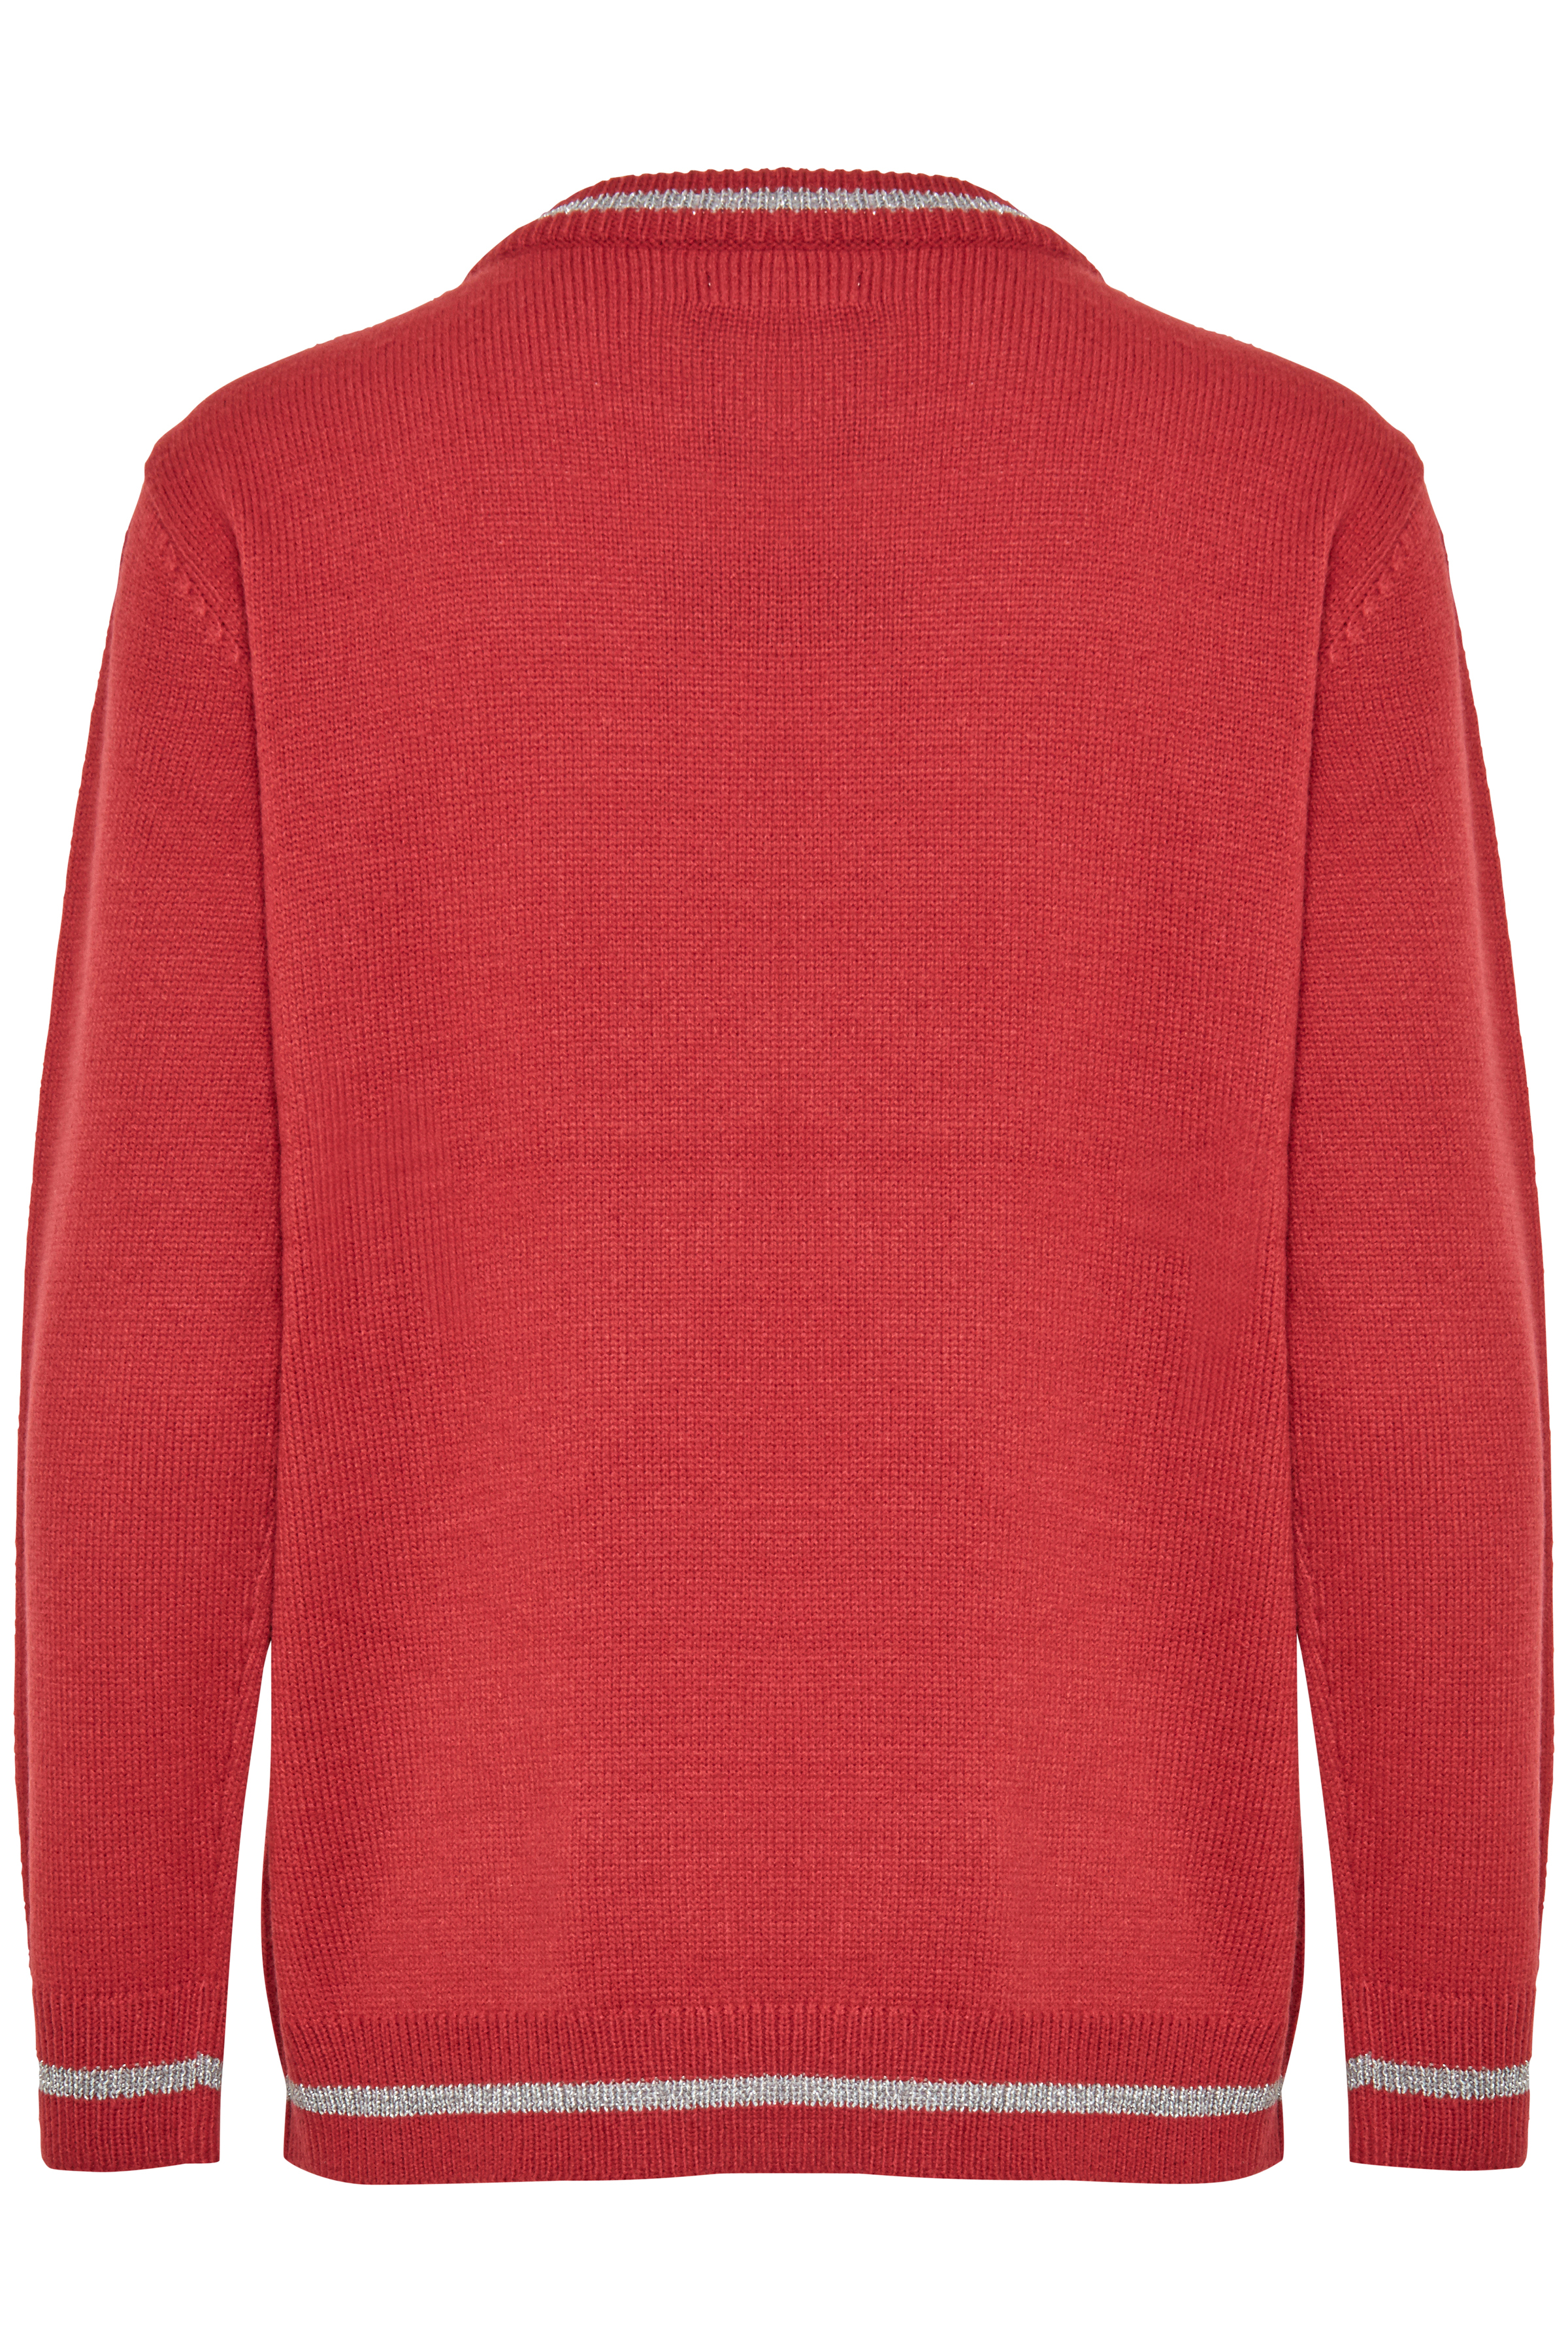 Blood Red Combi 1 Knitted pullover from b.young – Buy Blood Red Combi 1 Knitted pullover from size XS-XXL here